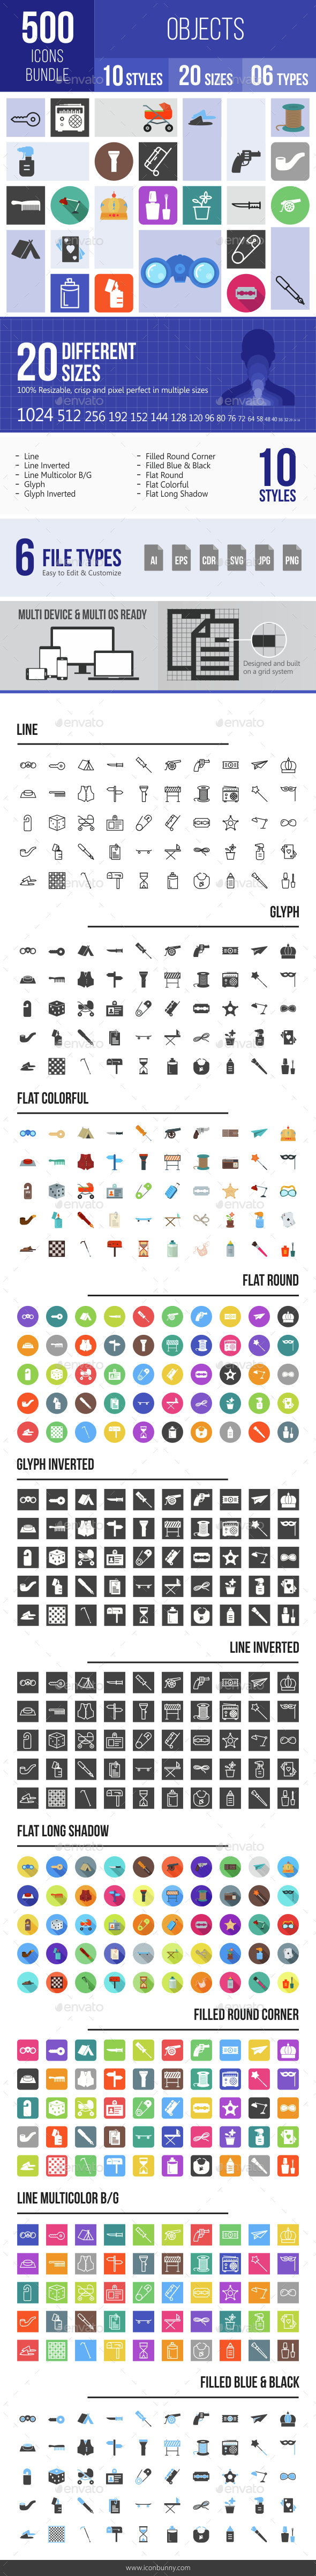 500 Objects Icons Bundle - Icons